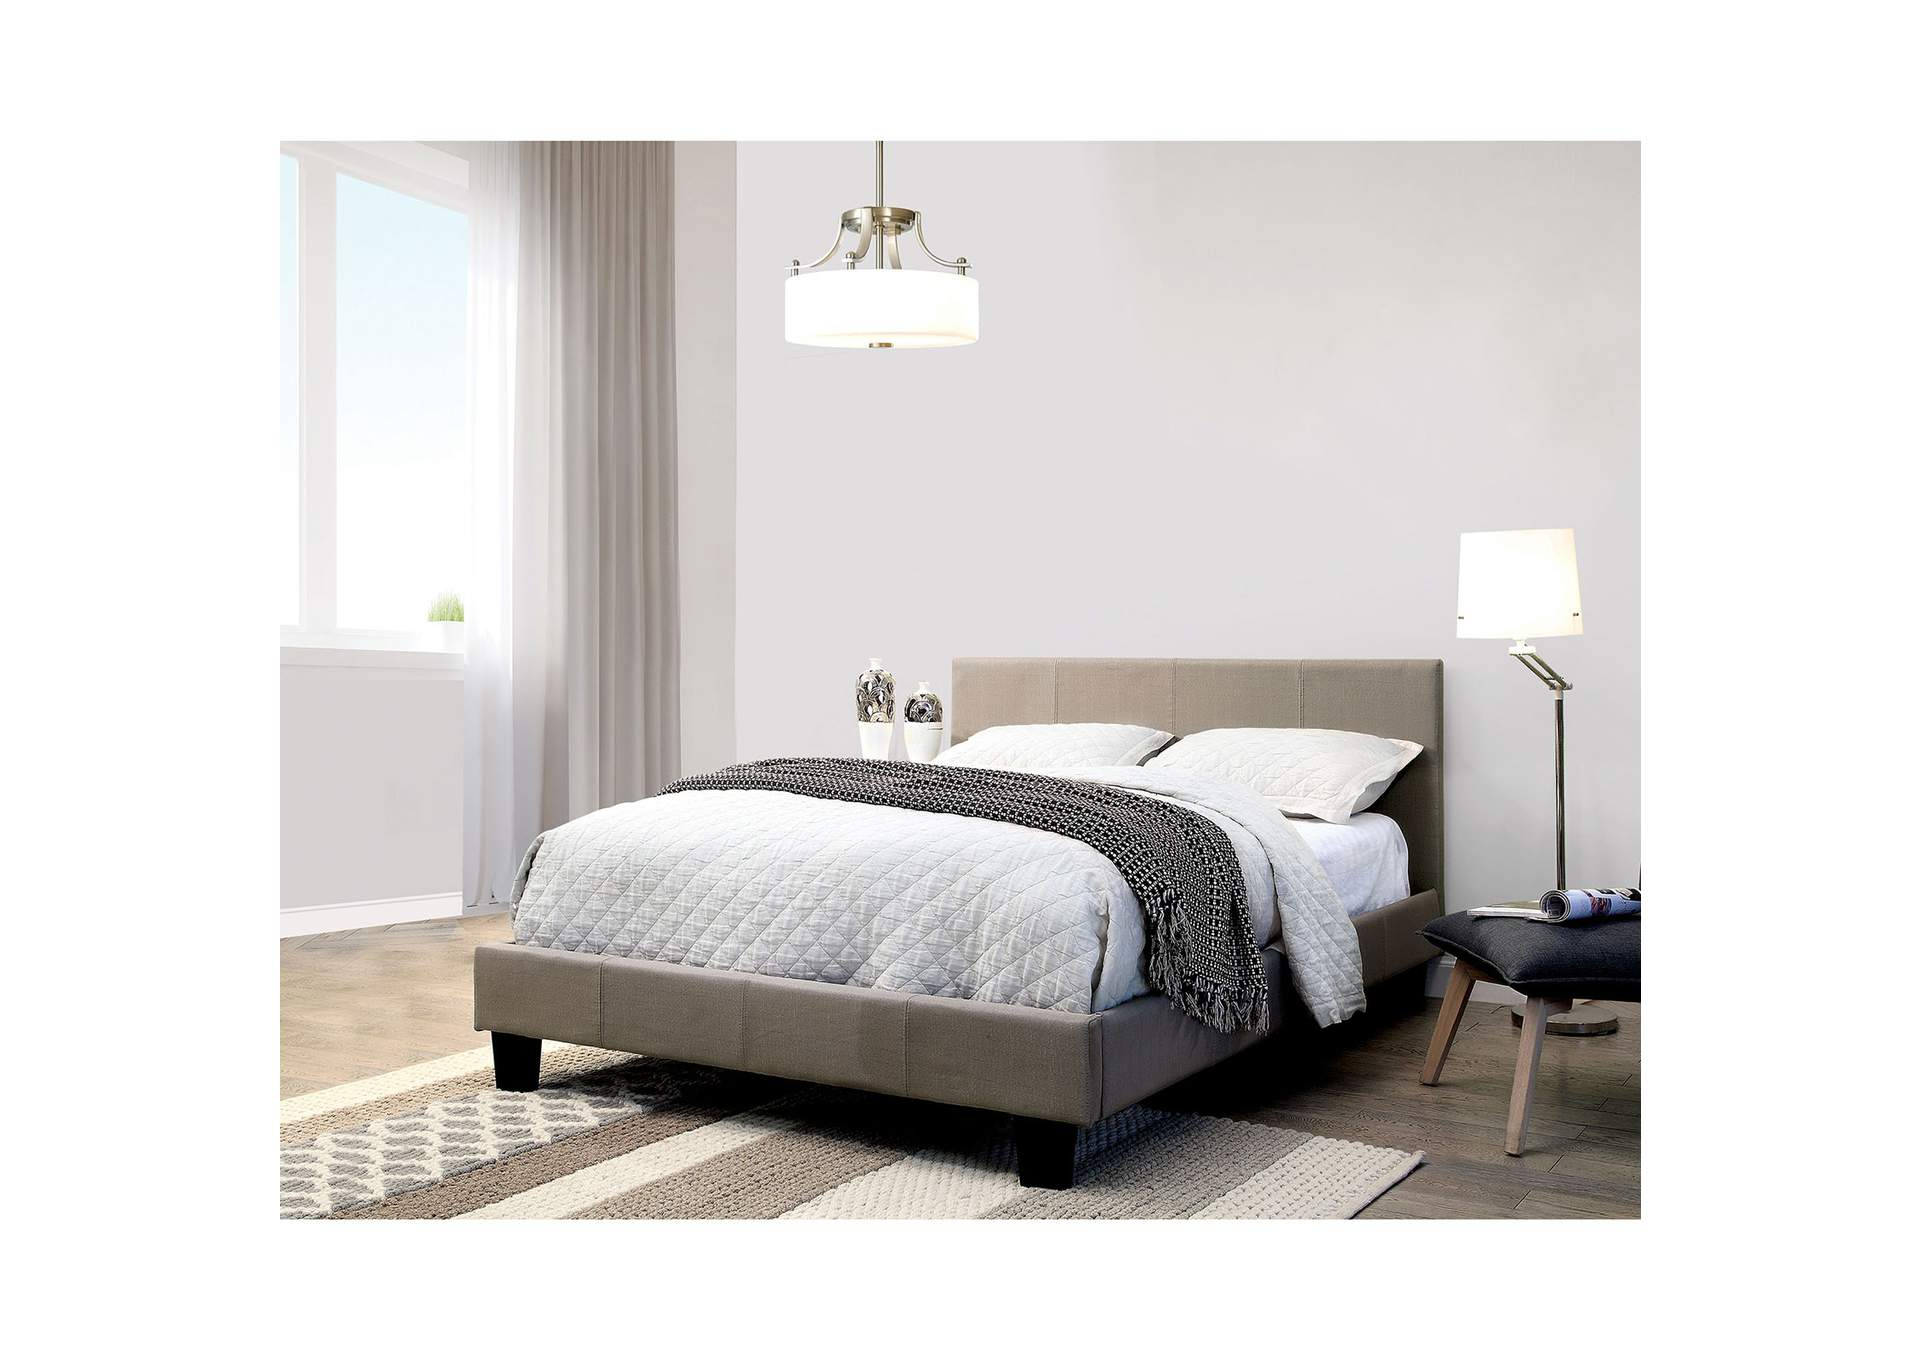 Sims Gray California King Platform Bed,Furniture of America